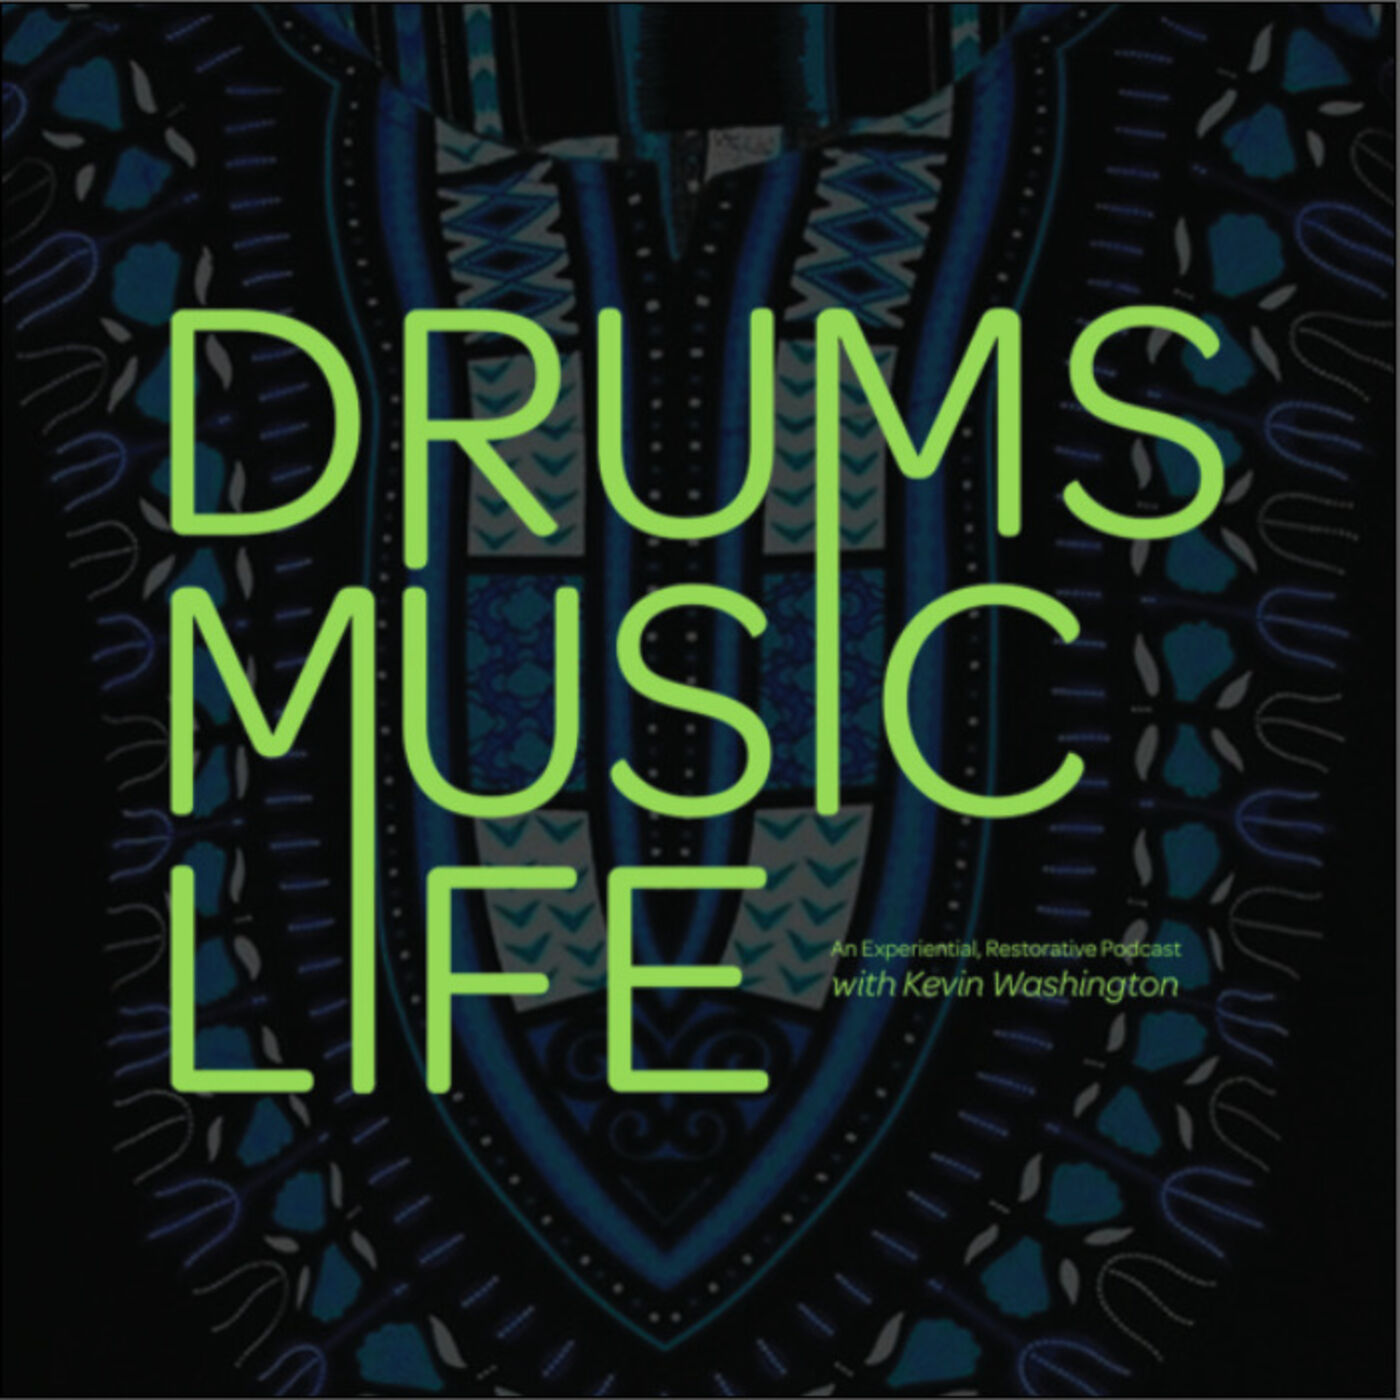 Episode 1: Drums.Music.Life...With Kevin Washington: Launch